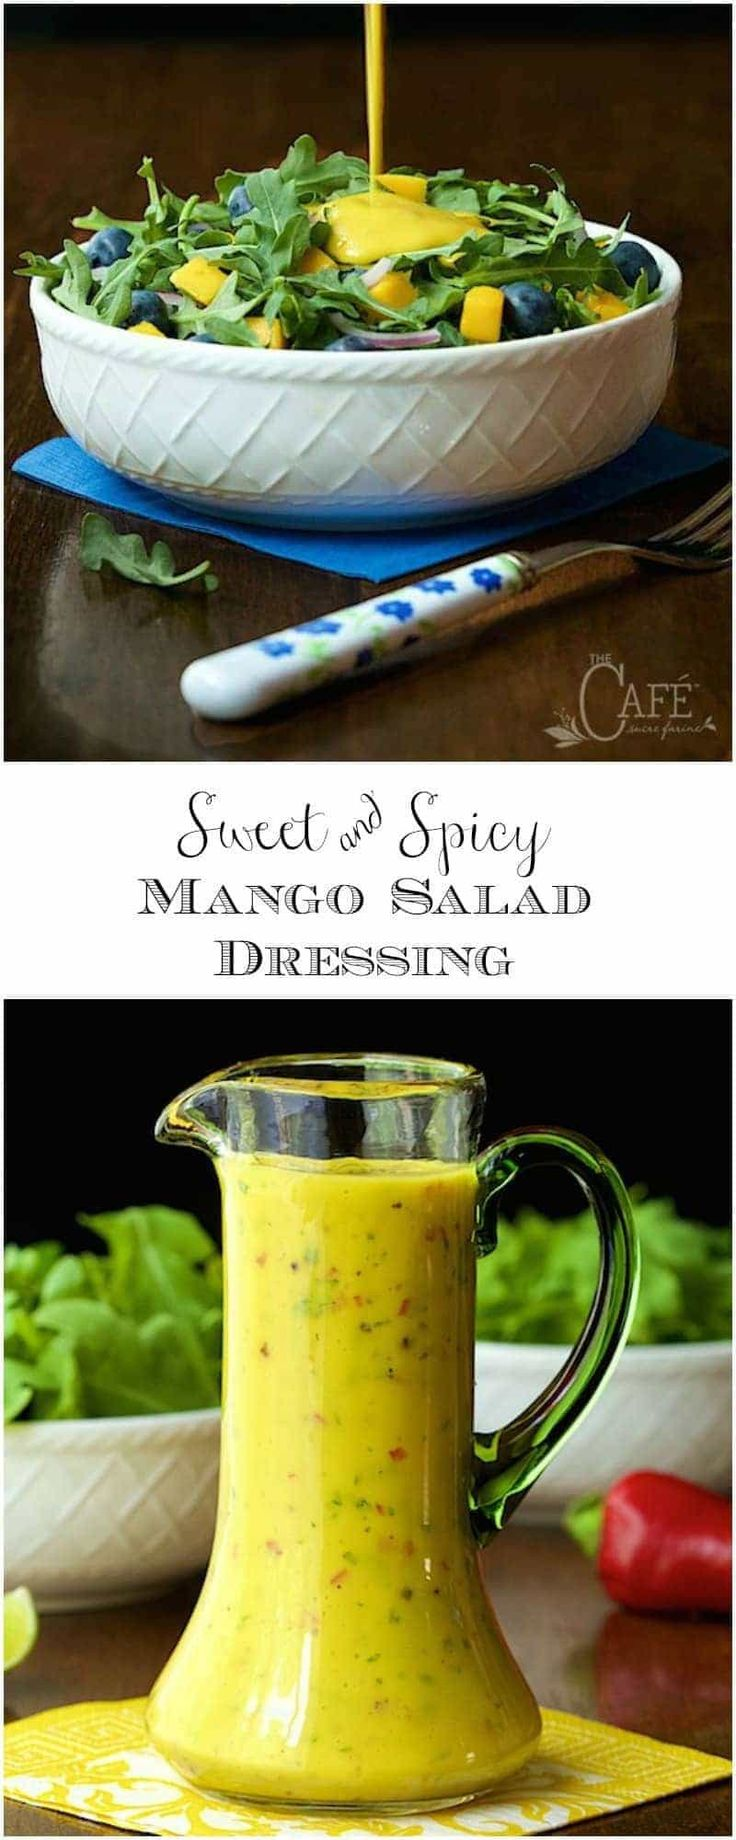 So delicious, super easy and this dressing is the anecdote for boring salads and it's fabulous drizzled over pan-seared or grilled salmon, shrimp or chicken! via @cafesucrefarine